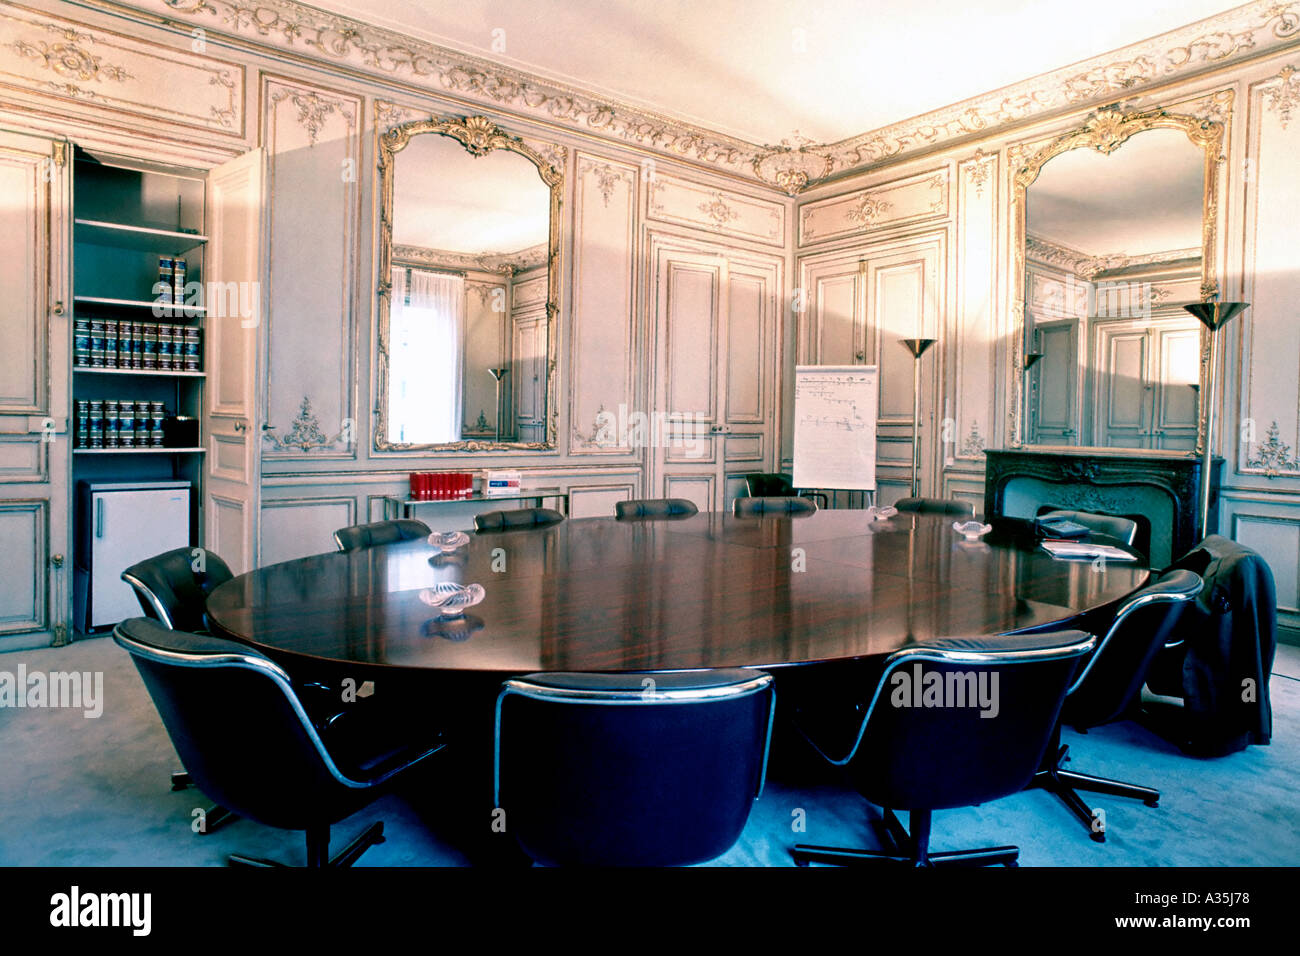 Oval Conference Table Stock Photos Oval Conference Table Stock - Old conference table